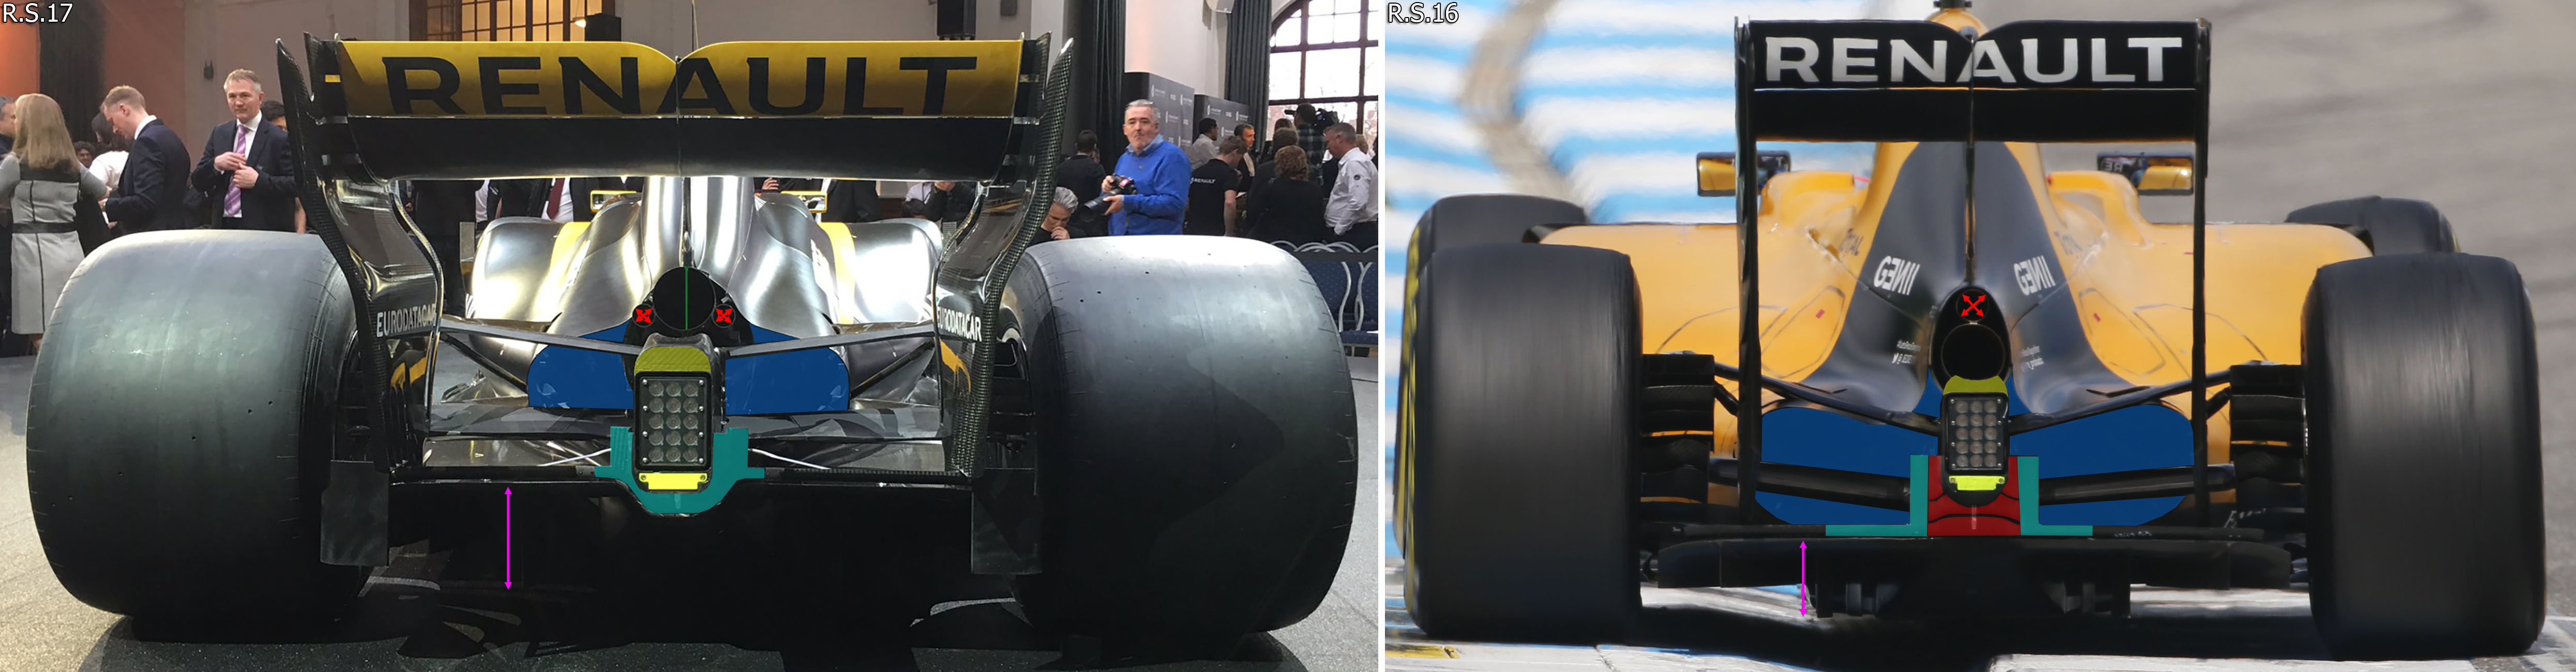 rs17-diffuser